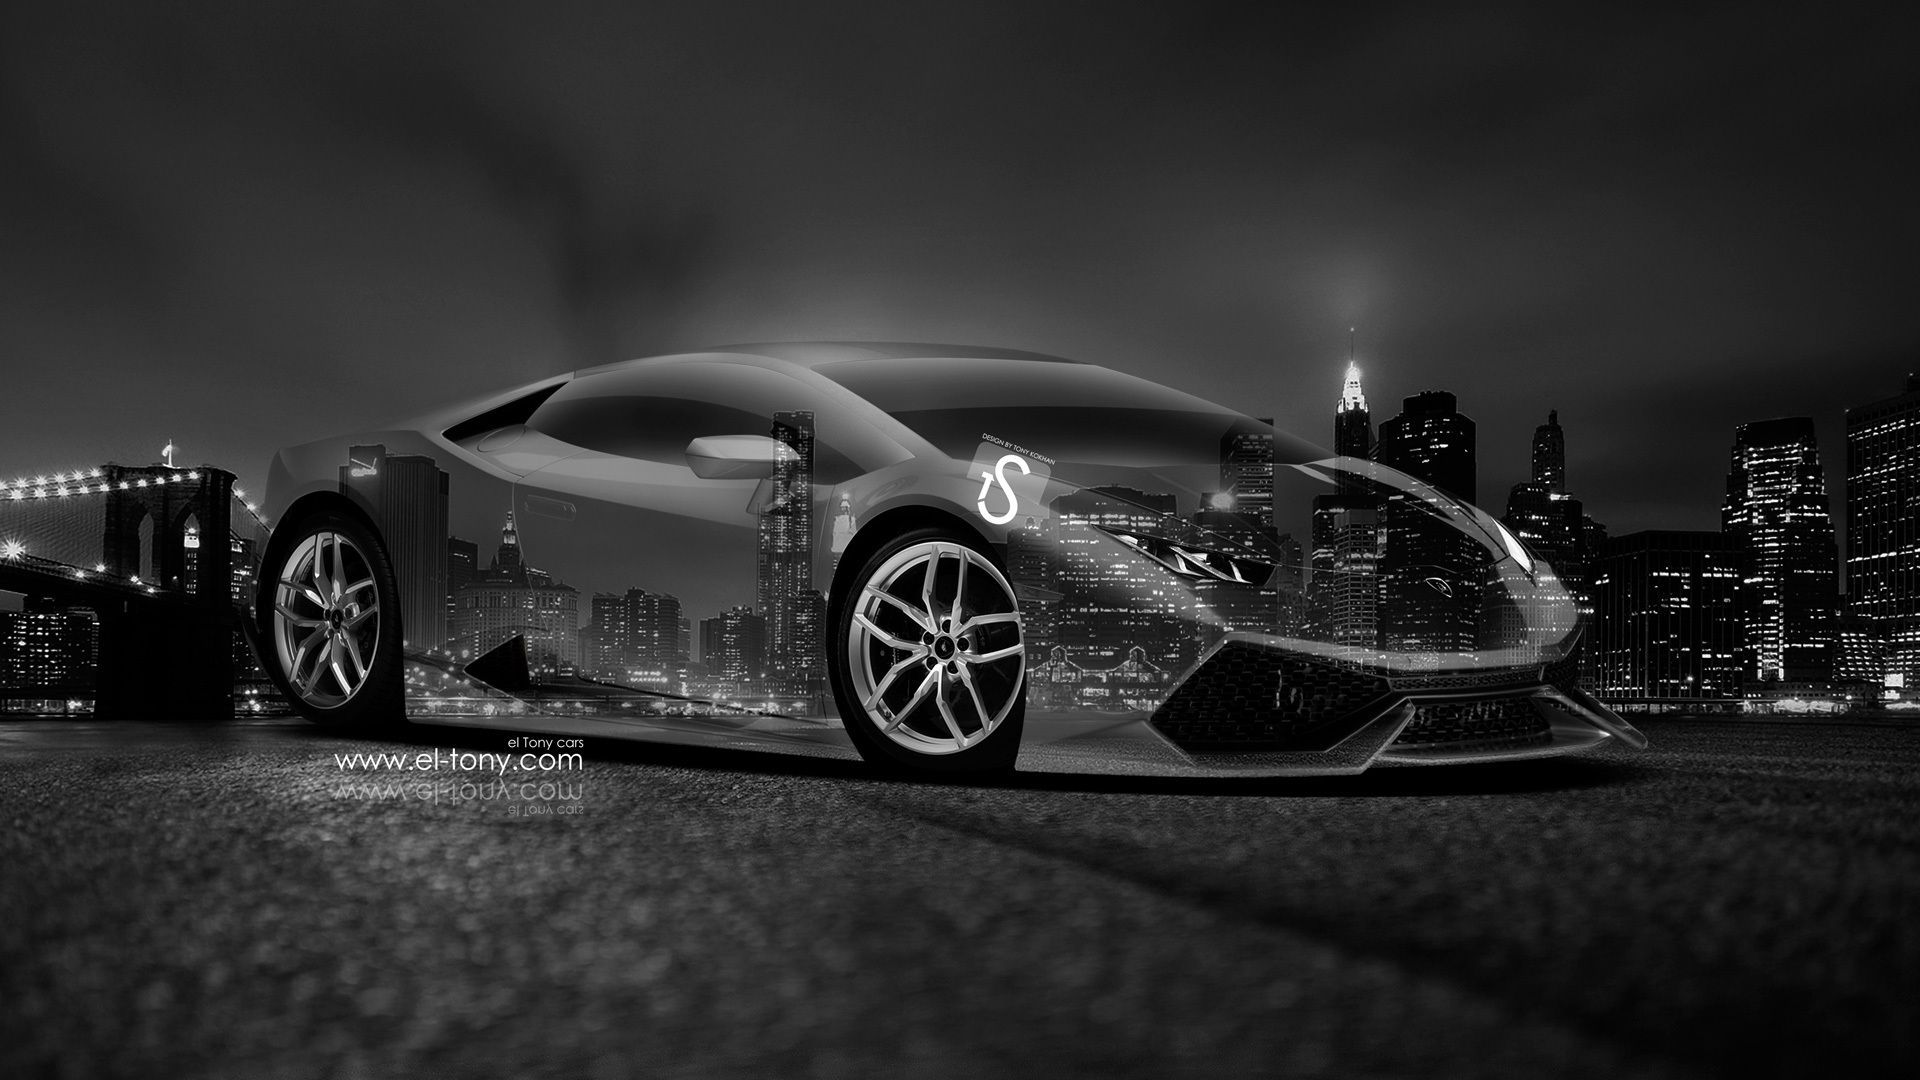 Superieur Lamborghini Gallardo Back Abstract Car Design By Tony Kokhan Wallpapers) U2013  HD Desktop Wallpapers